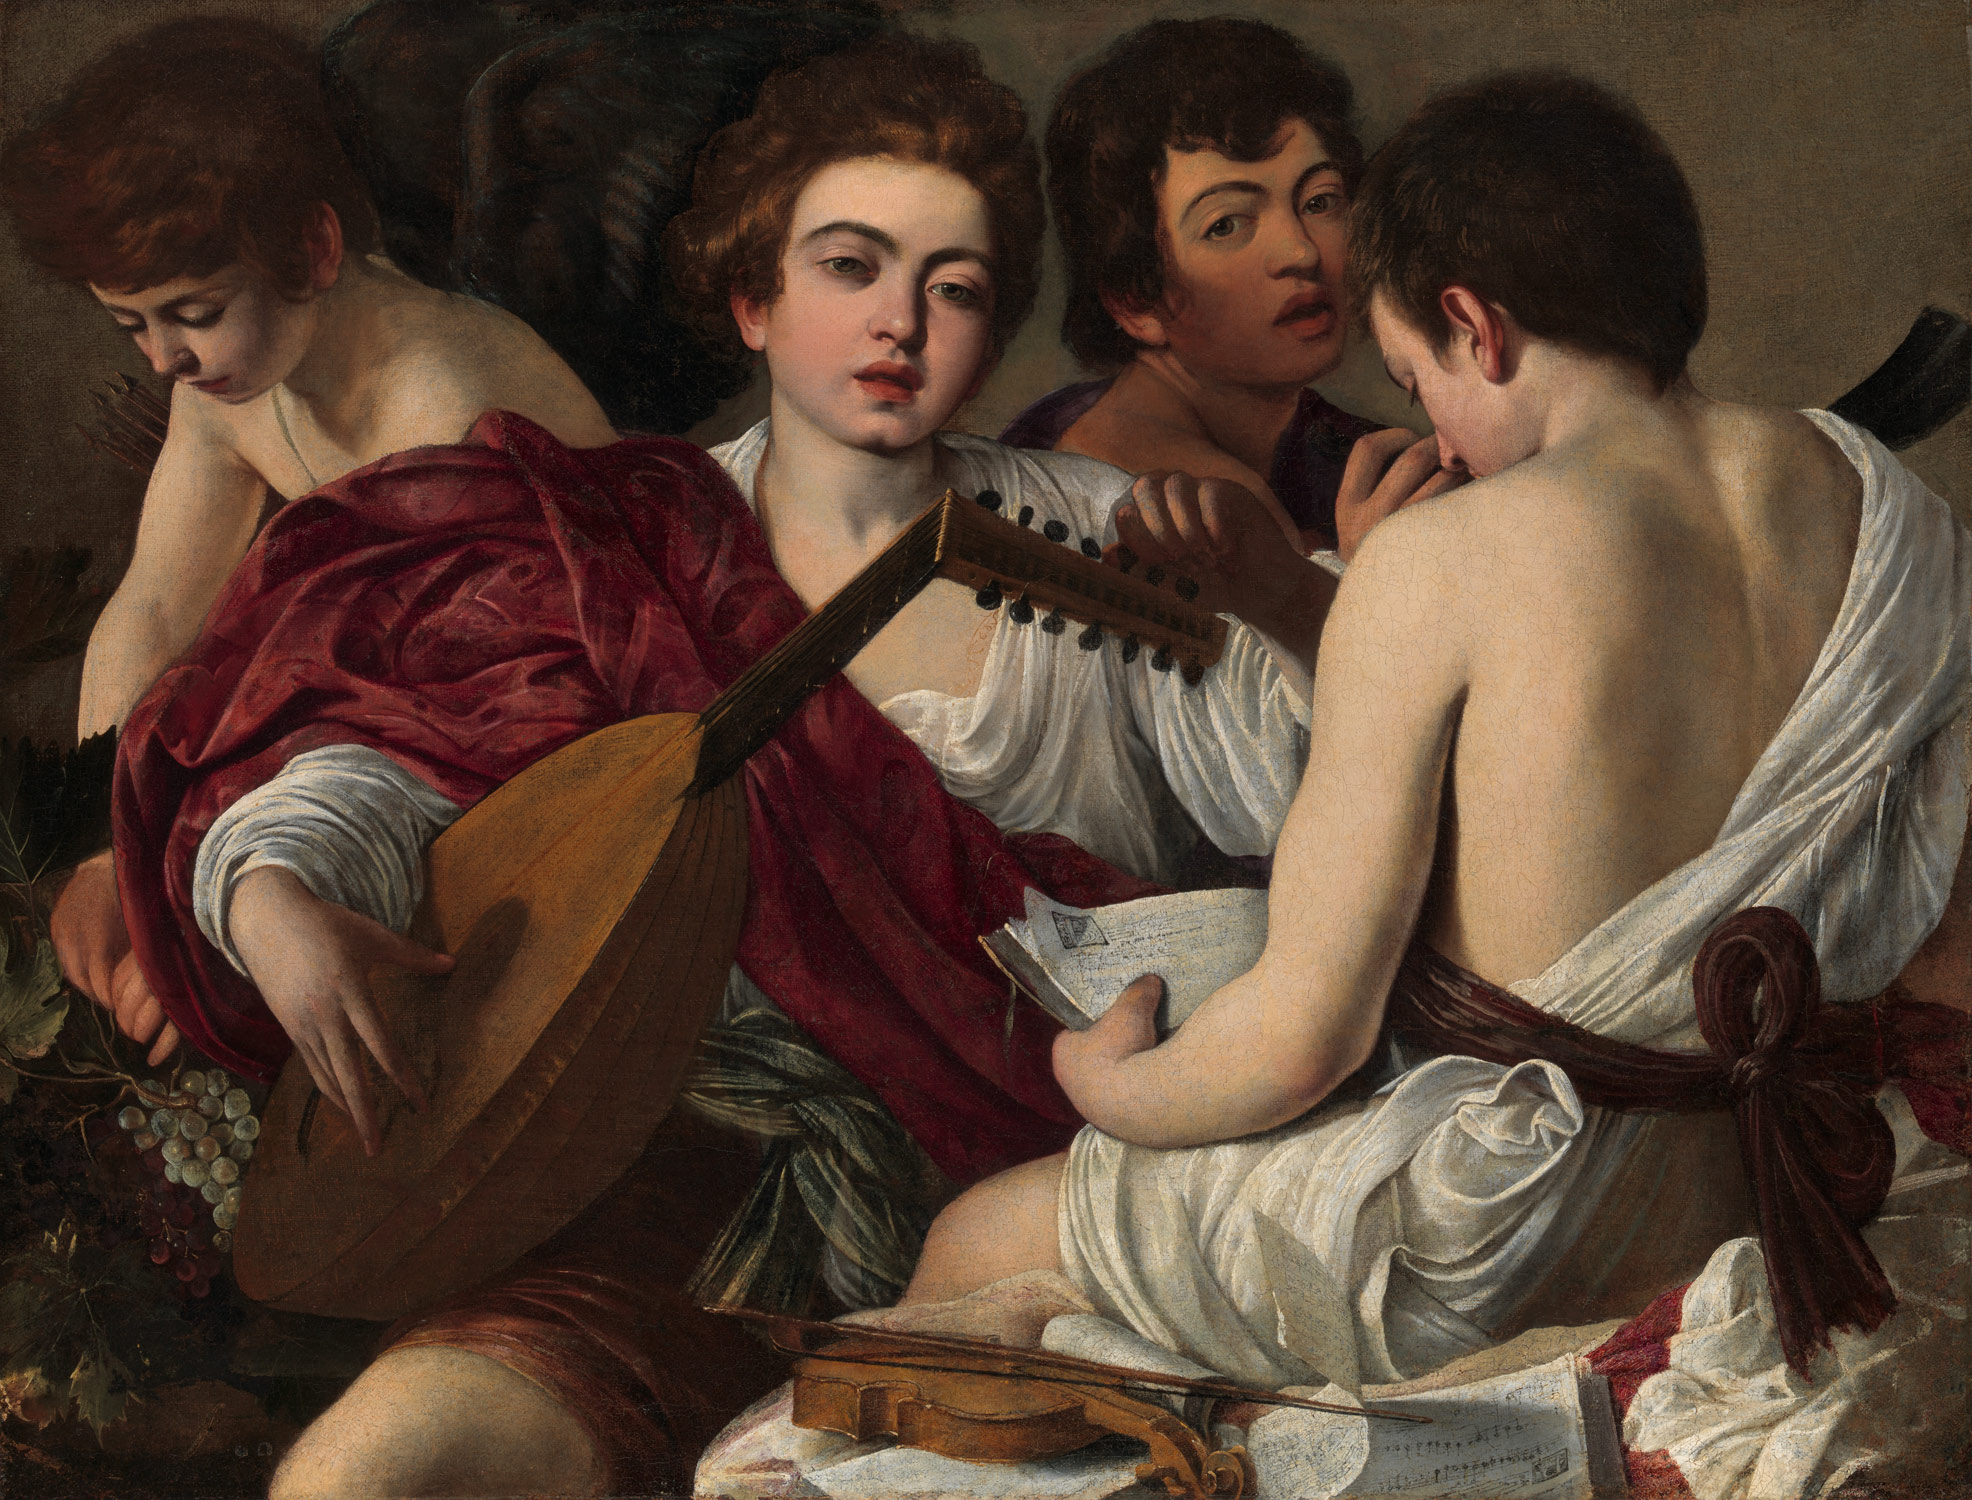 caravaggio michelangelo merisi 1571 1610 and his followers the musicians